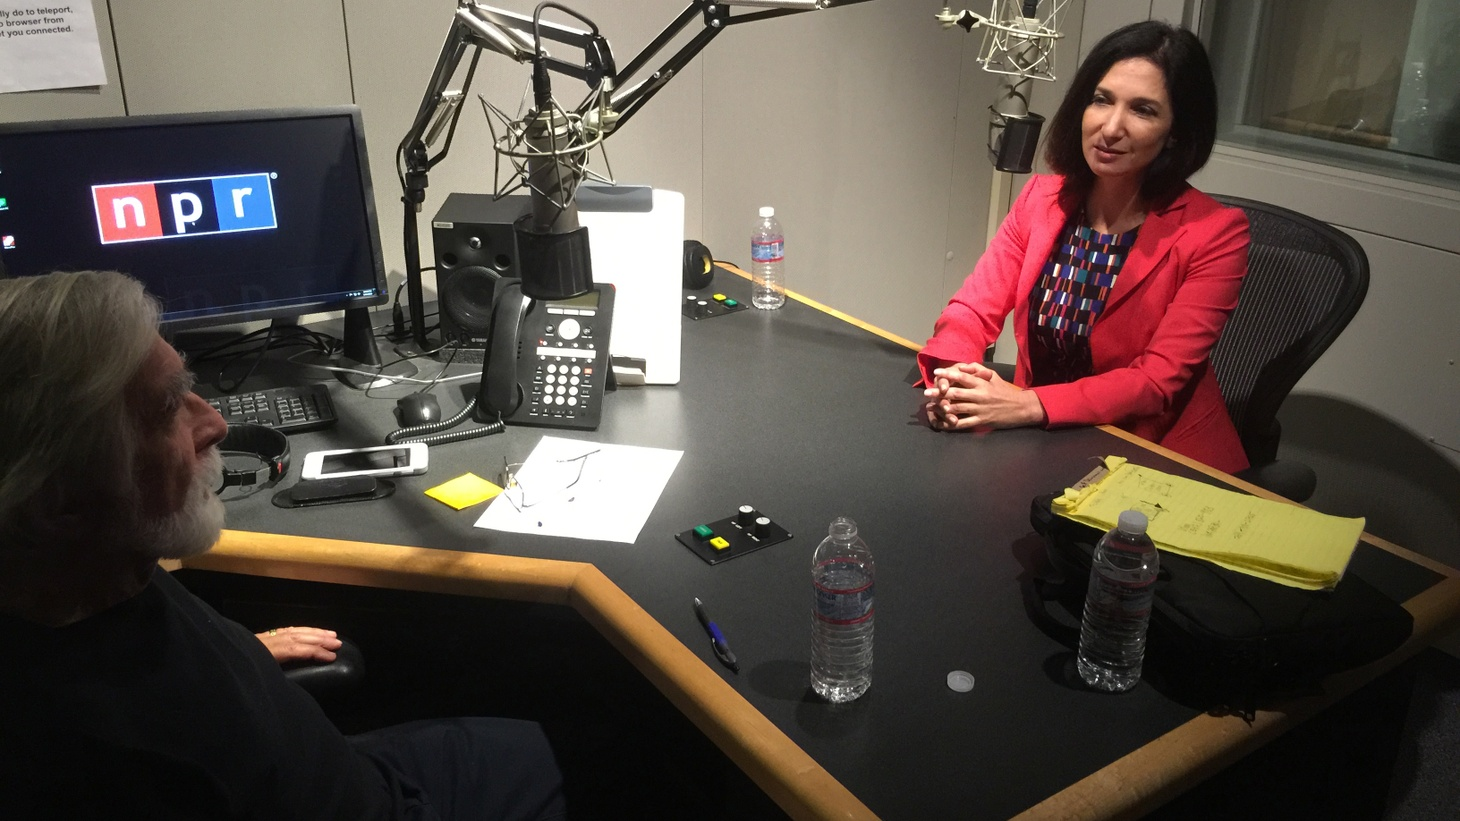 Robert Scheer discusses the culture of Wall Street and its influence on government with author, journalist and former investment banker Nomi Prins.